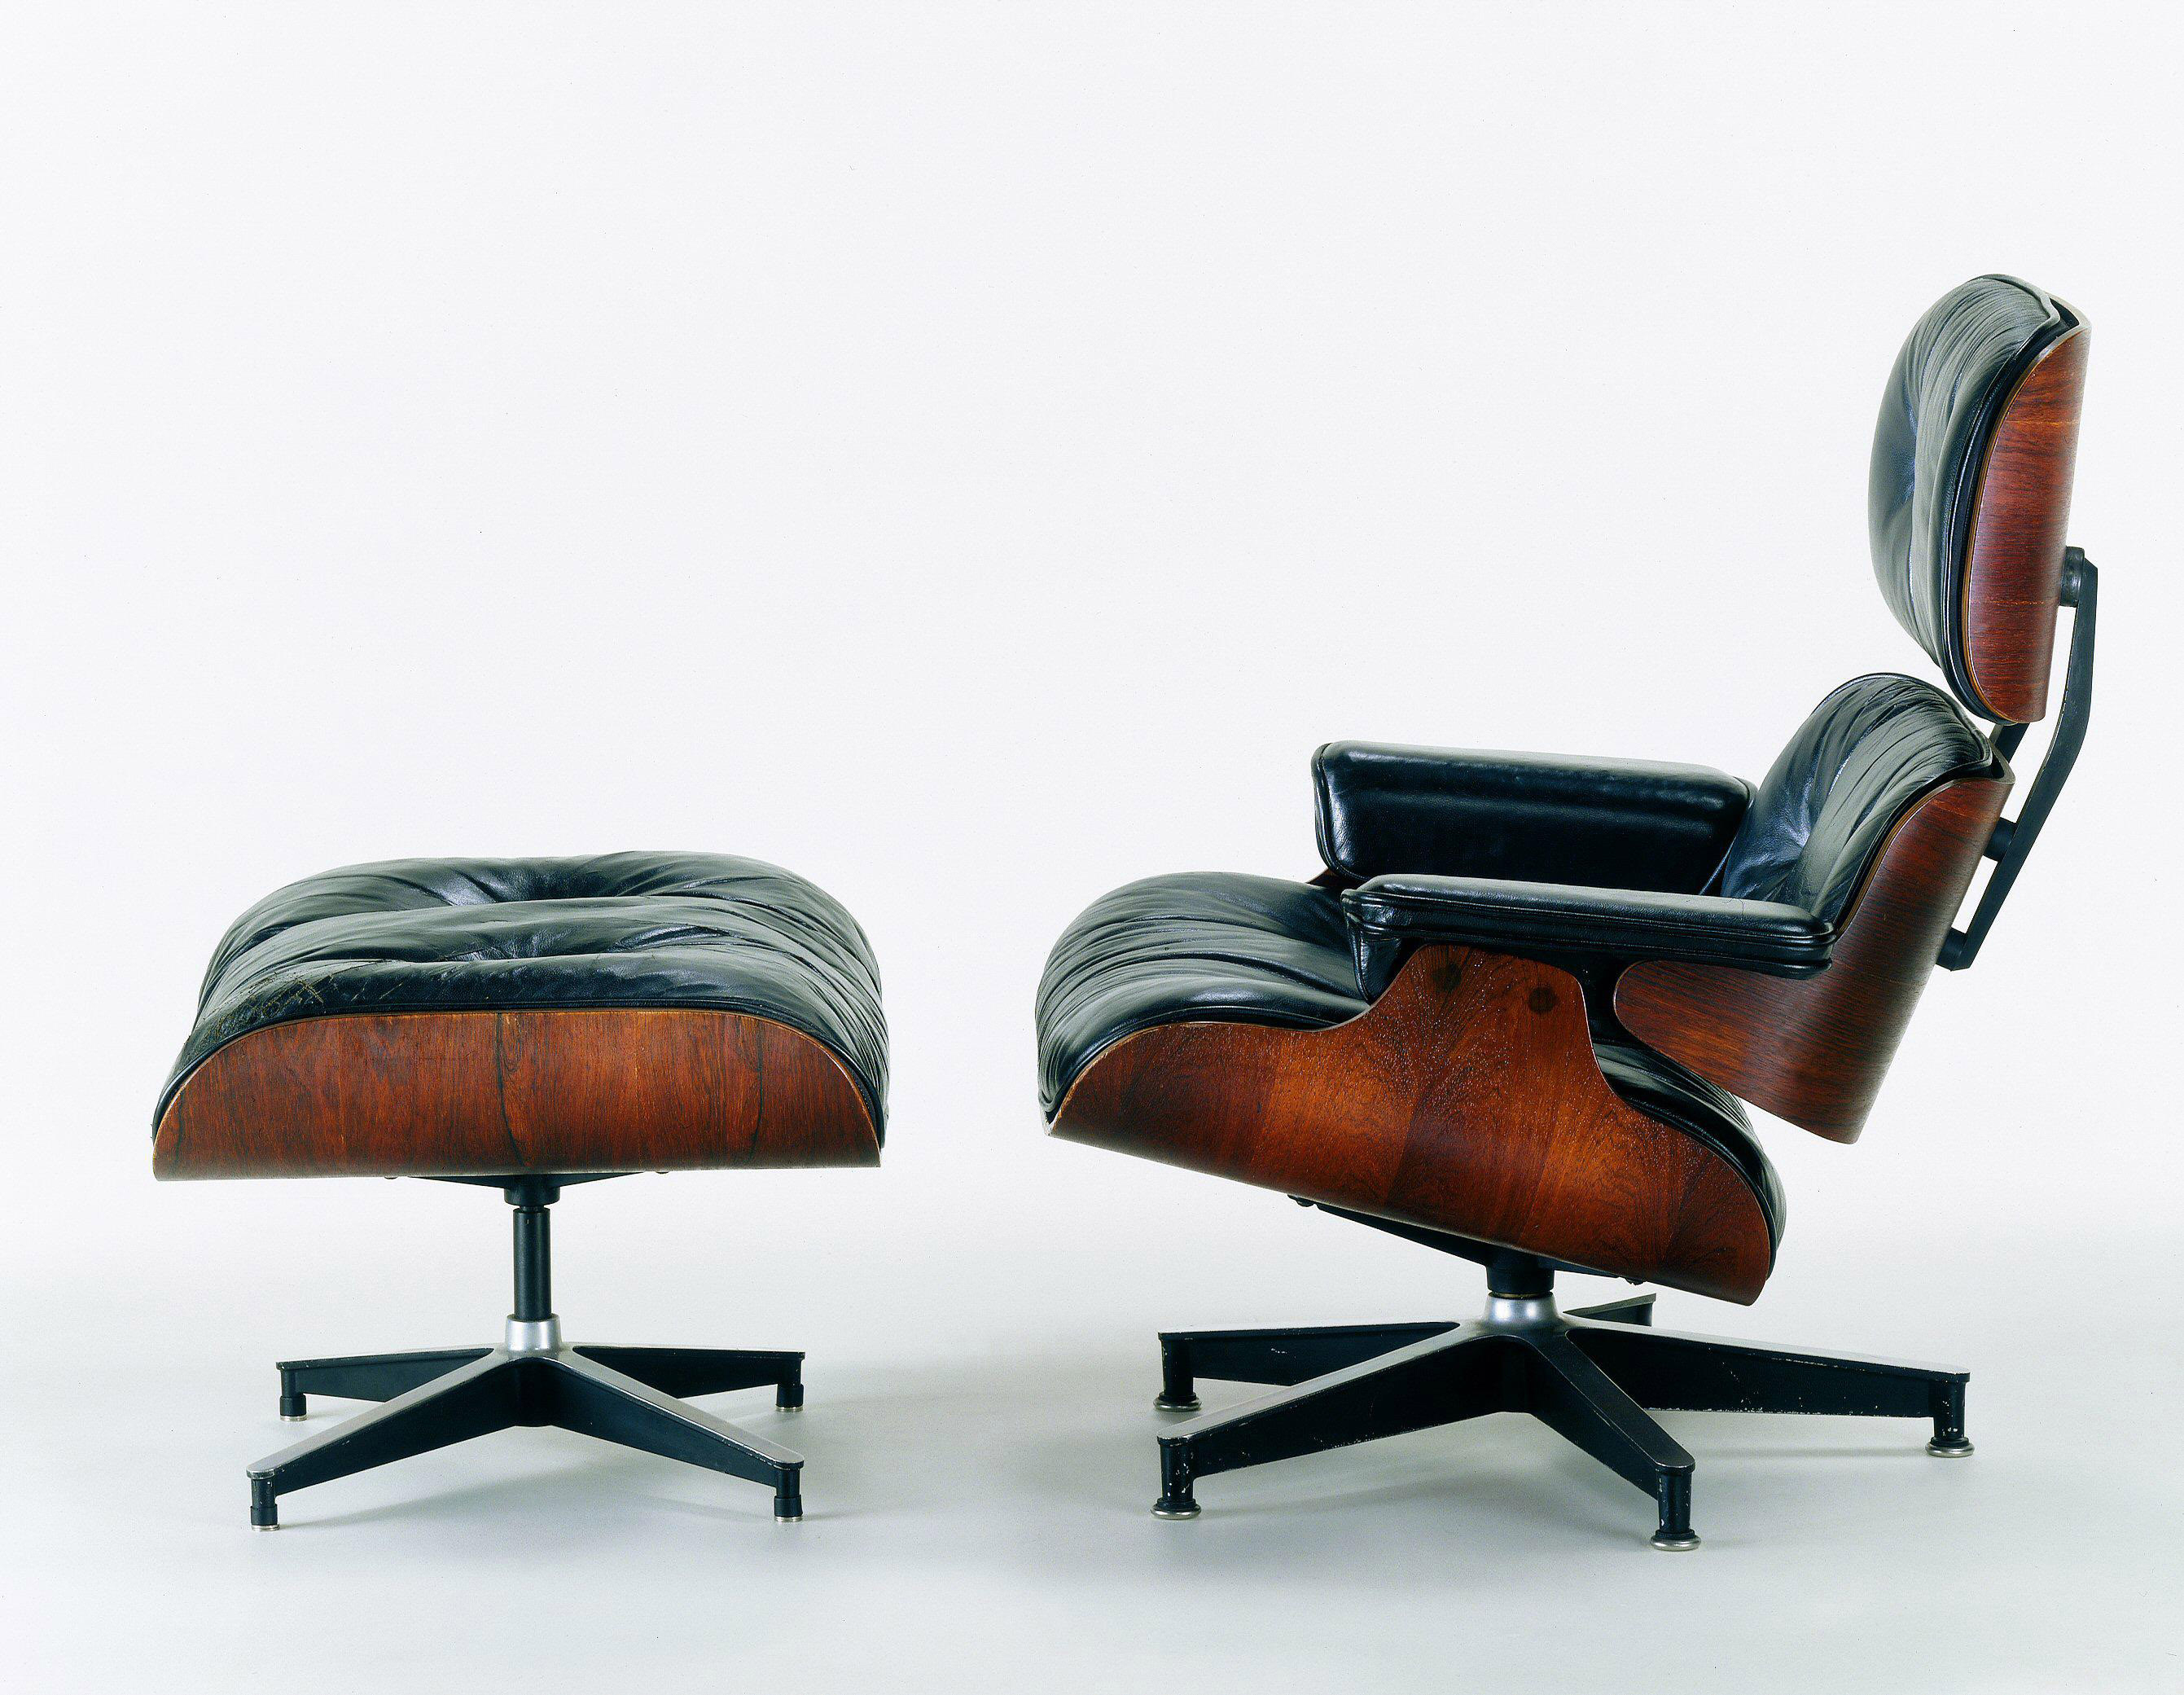 Eames lounge chair manufacturing in the vitra atelier the superslice - Herman miller chair eames ...